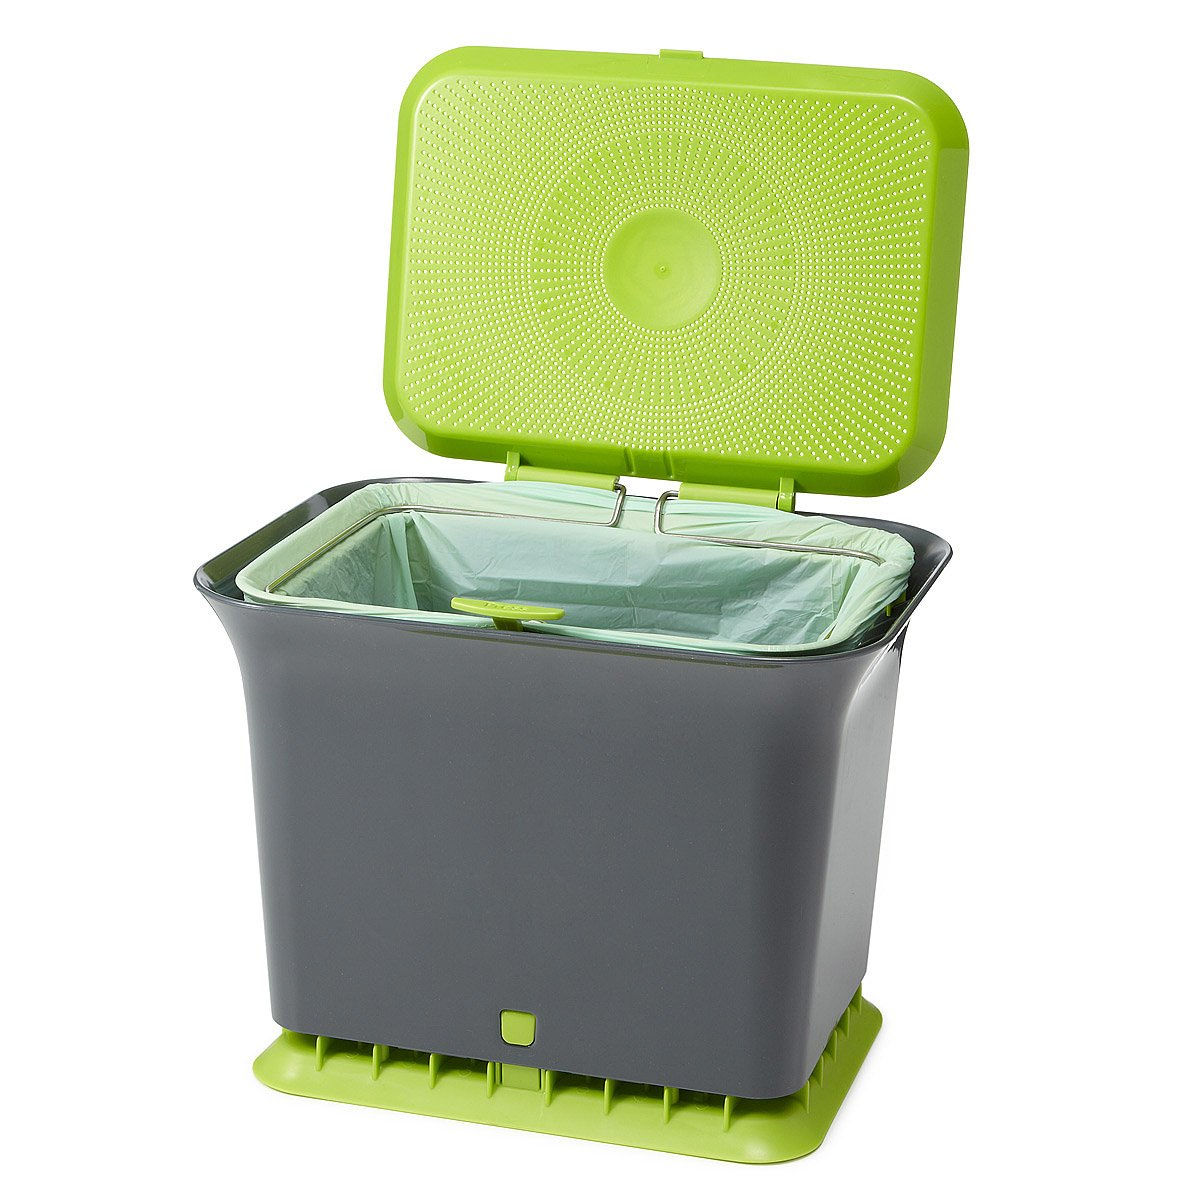 compost container odor free kitchen compost collect compost bin